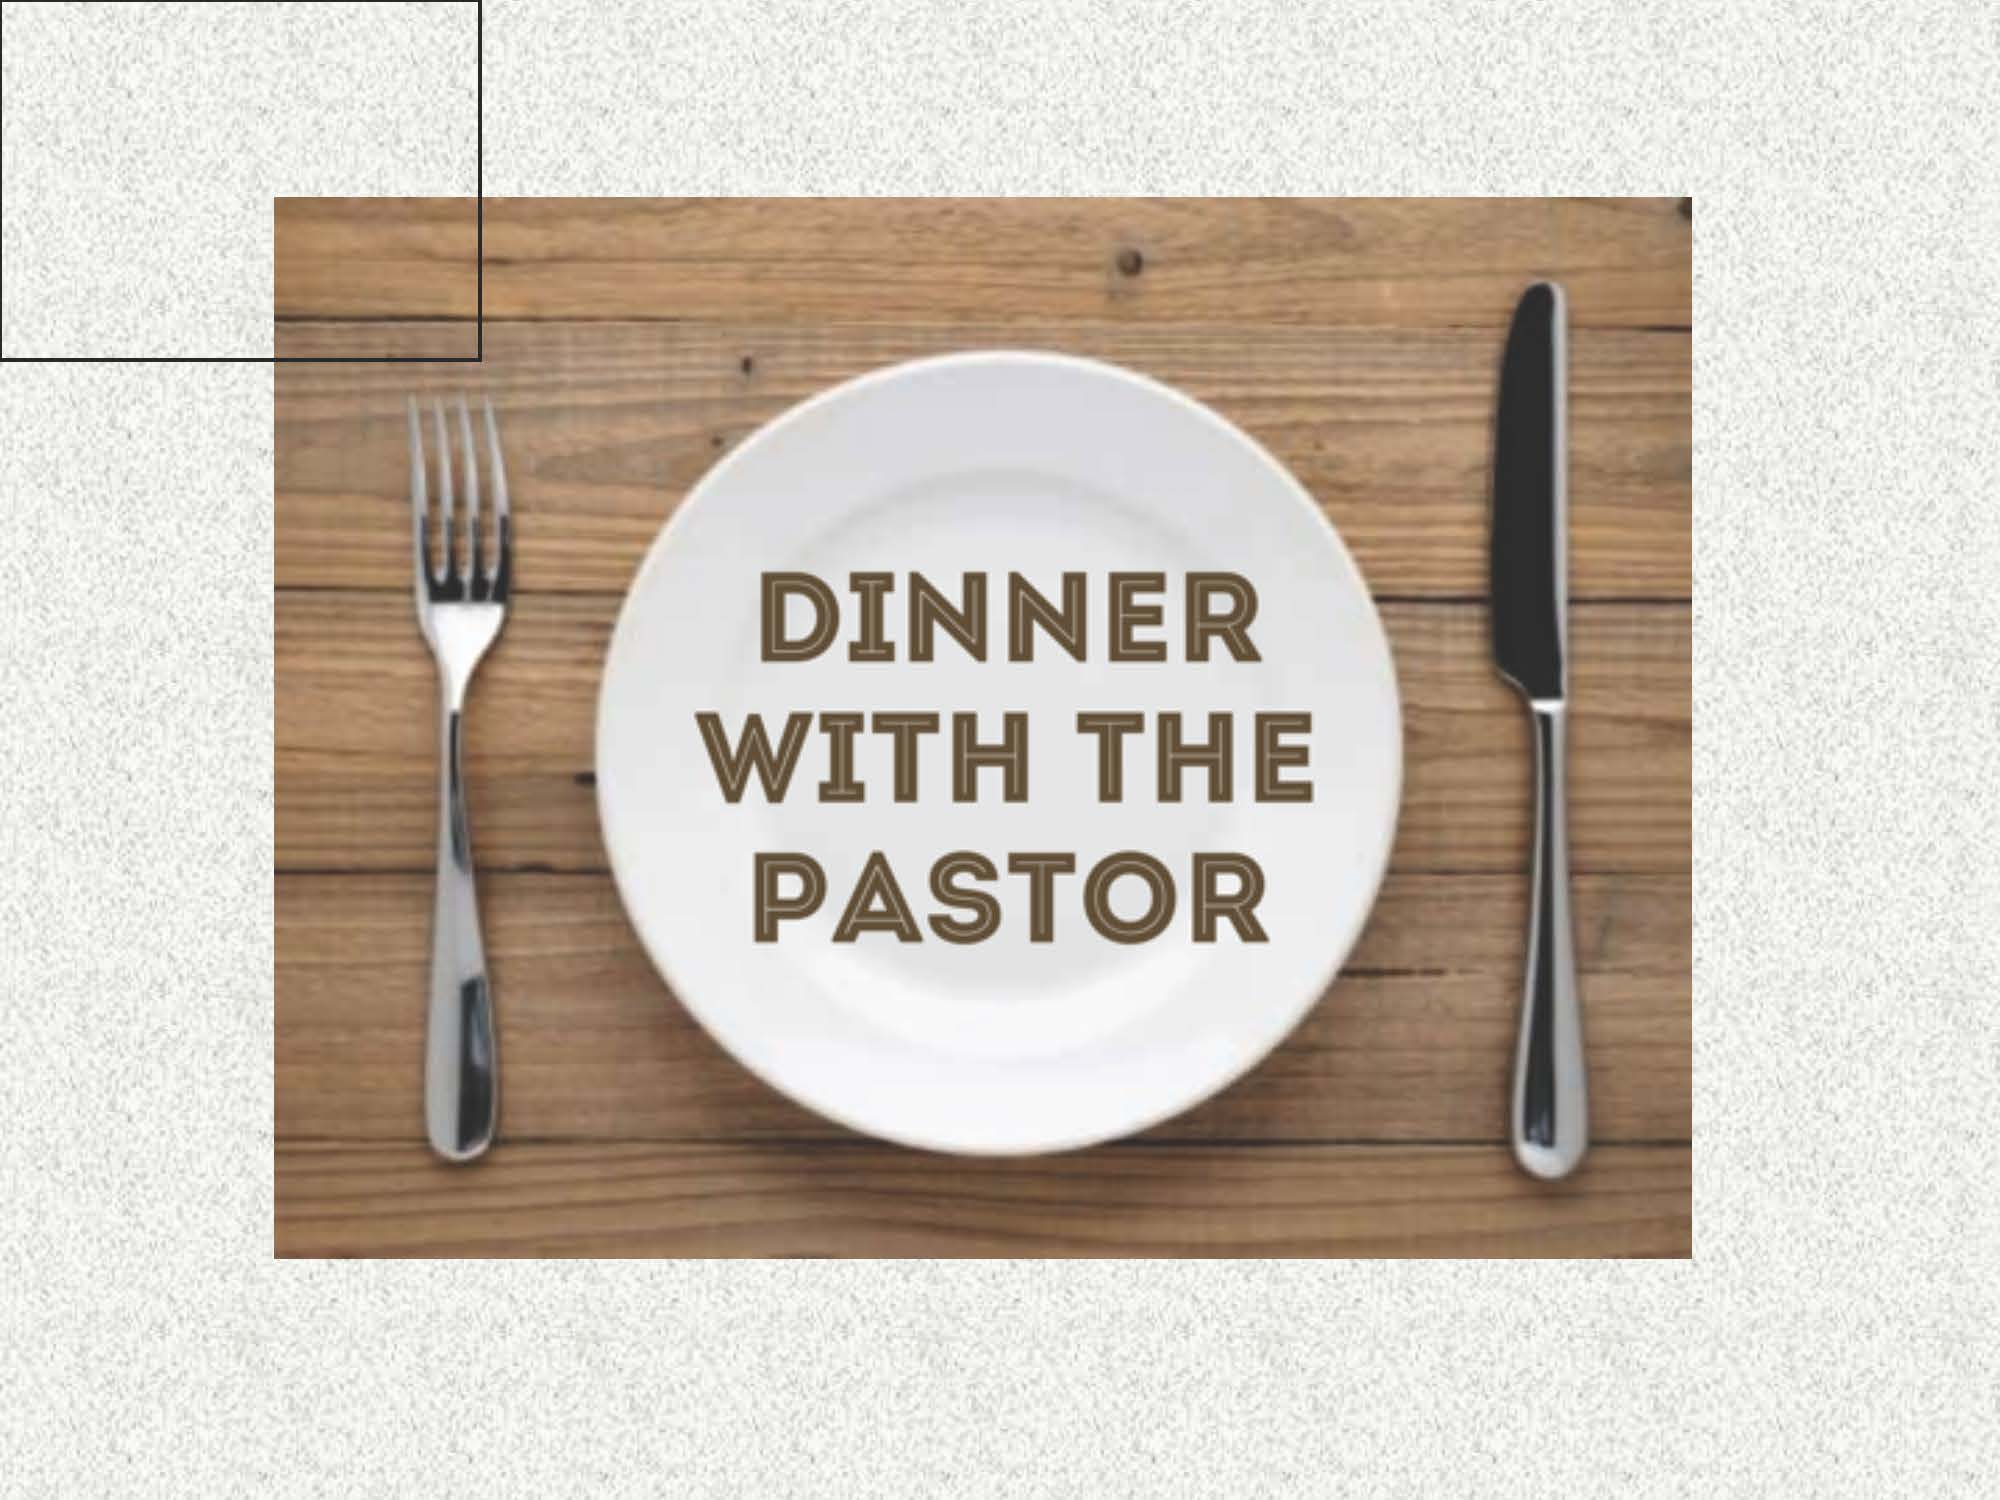 Dinner with the Pastor logo